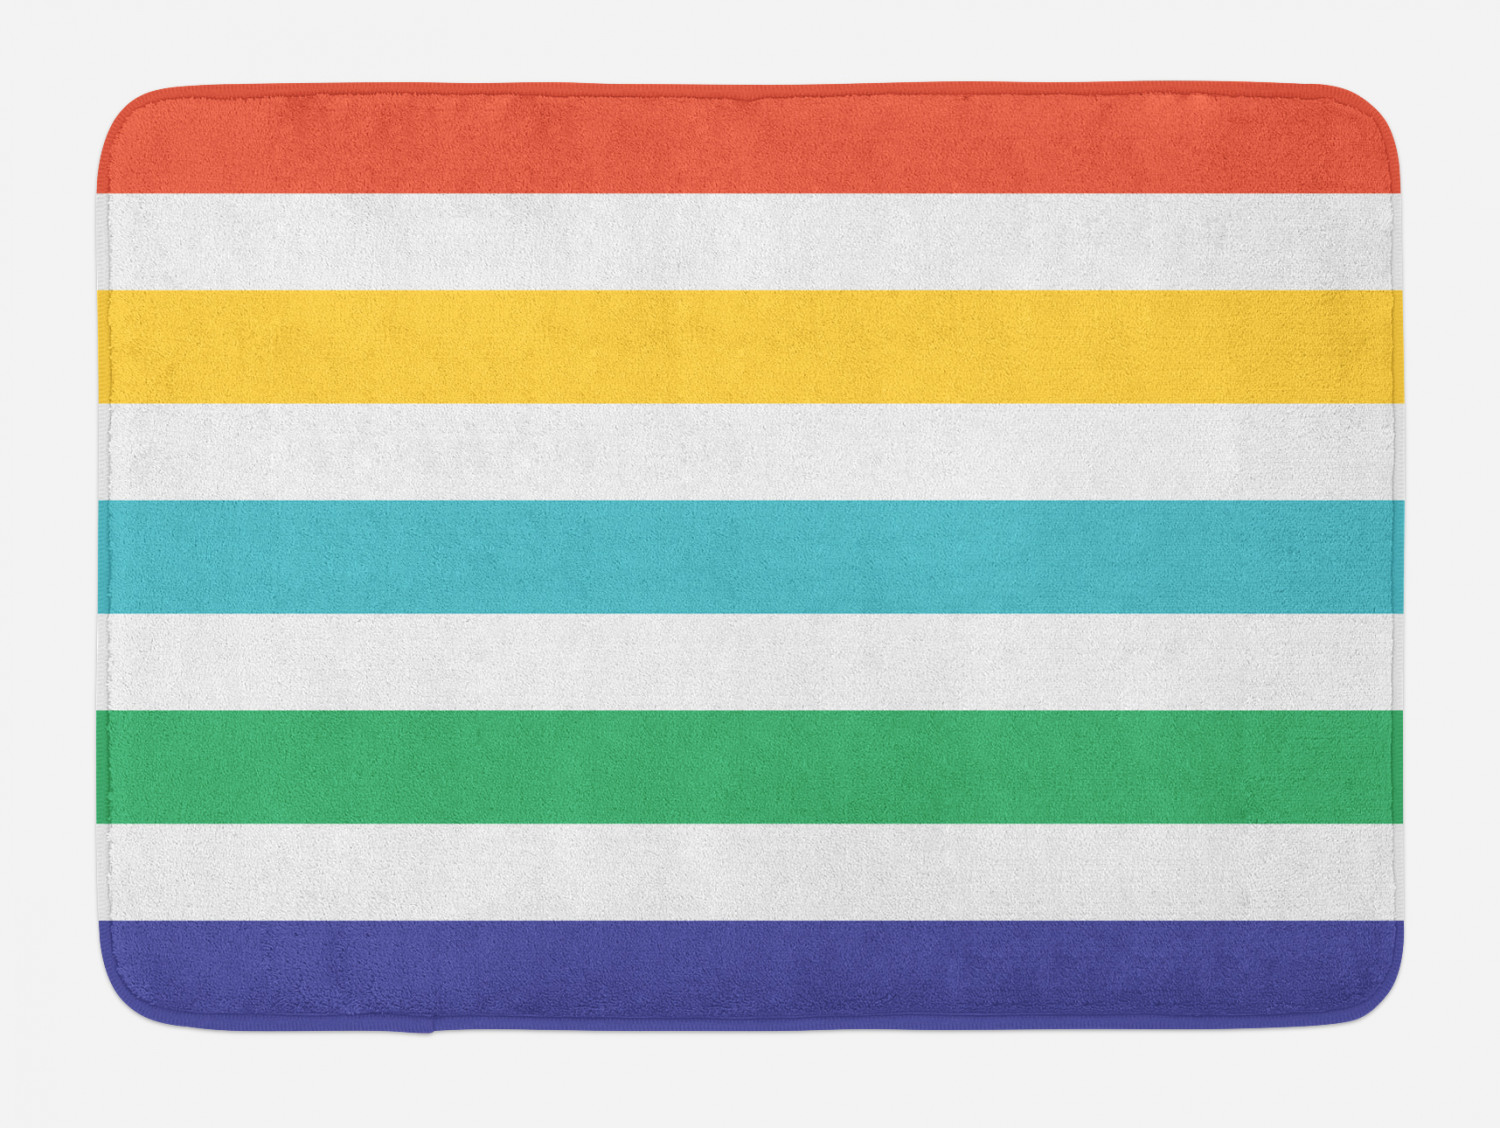 Striped Bath Mat Rainbow Colored And White Fun Horizontal Lines Kids Room Red Yellow Blue Green Art Non Slip Plush Mat Bathroom Kitchen Laundry Room Decor 29 5 X 17 5 Inches Multicolor Ambesonne